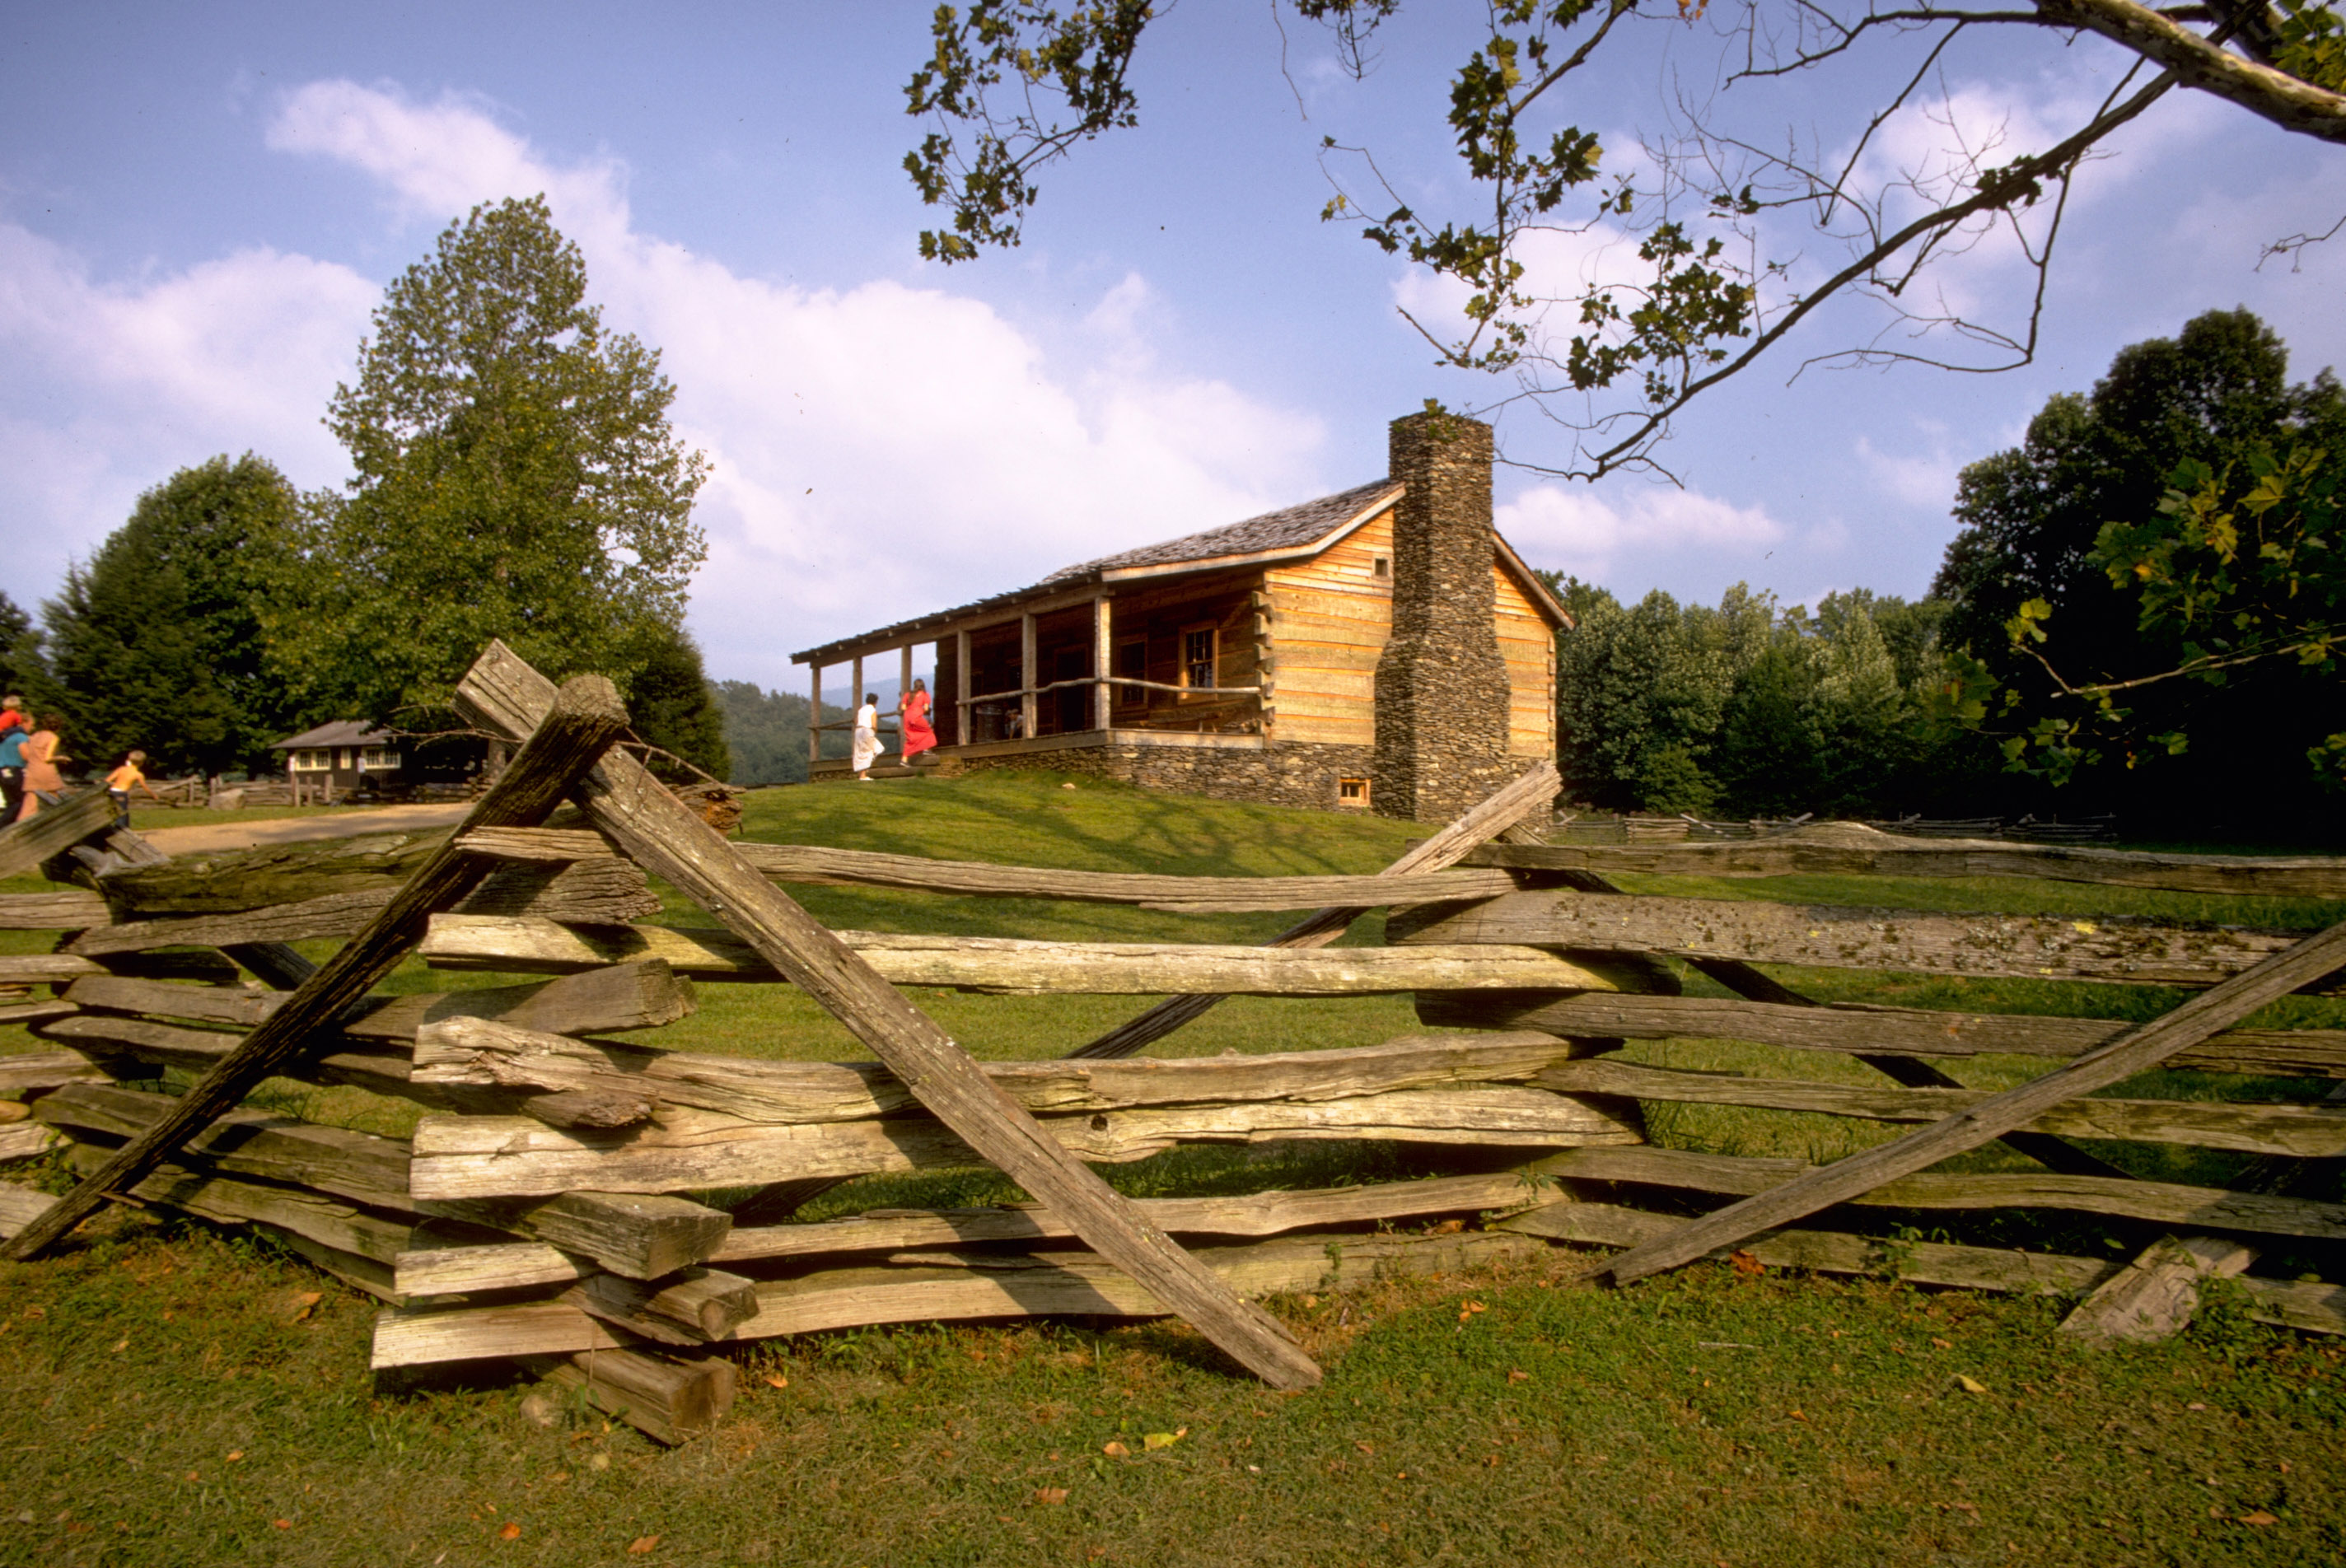 Incroyable Free Photos U003e USA Photos U003e Tennessee Photos U003e Great Smoky Mountains  National Park Photos U003e Cabin ...